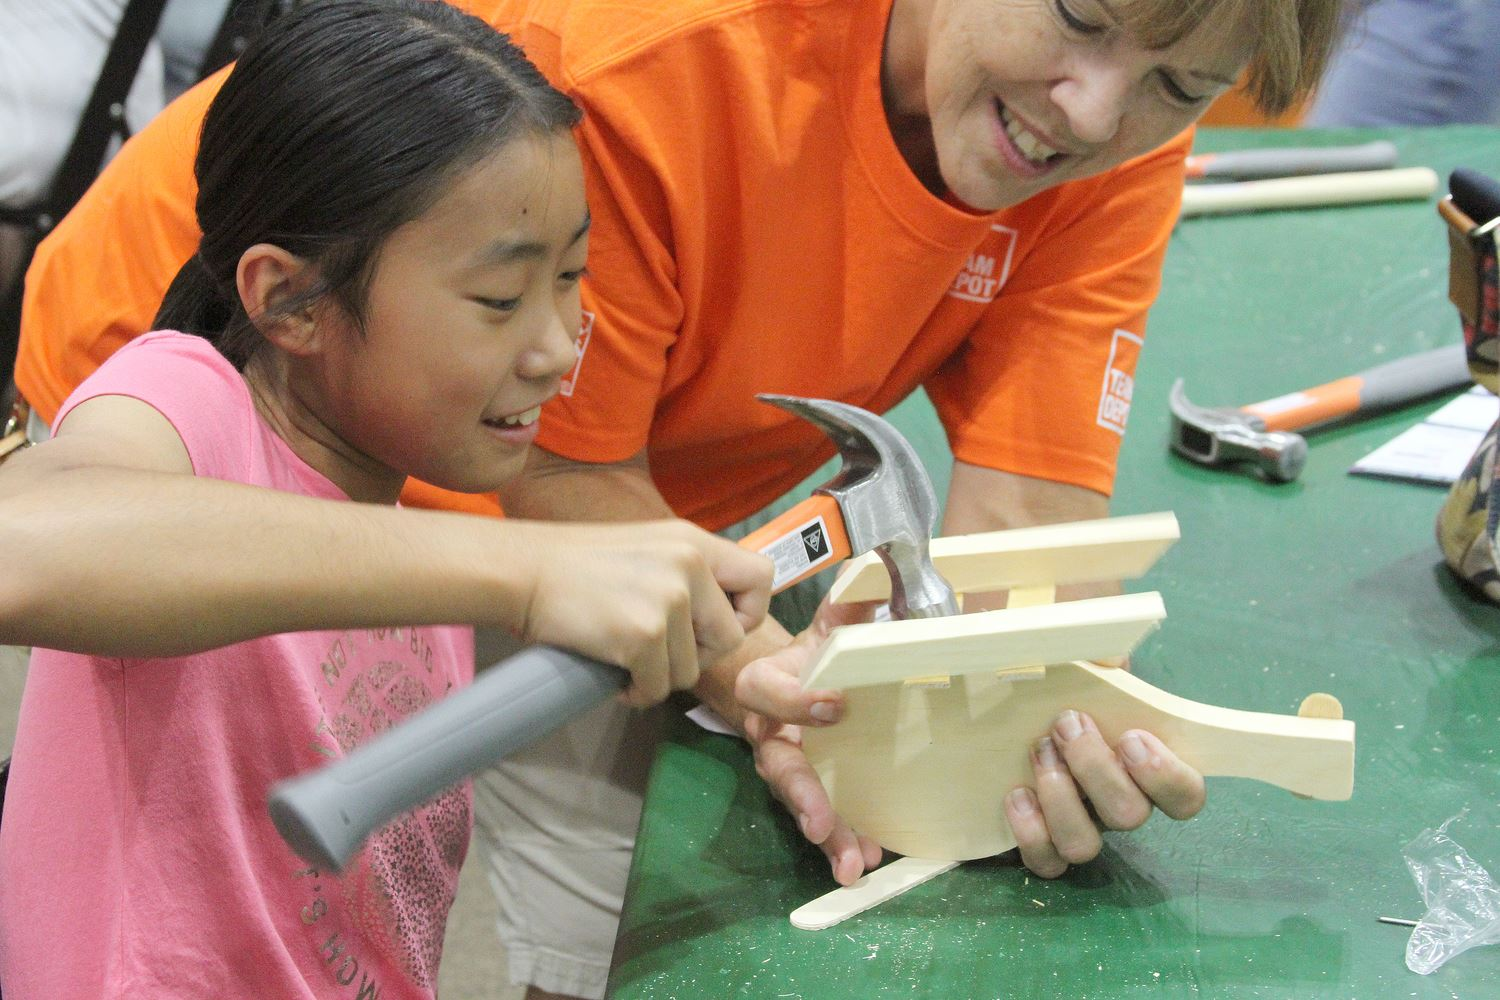 Little girl with a Home Depot volunteer hammering her wood craft